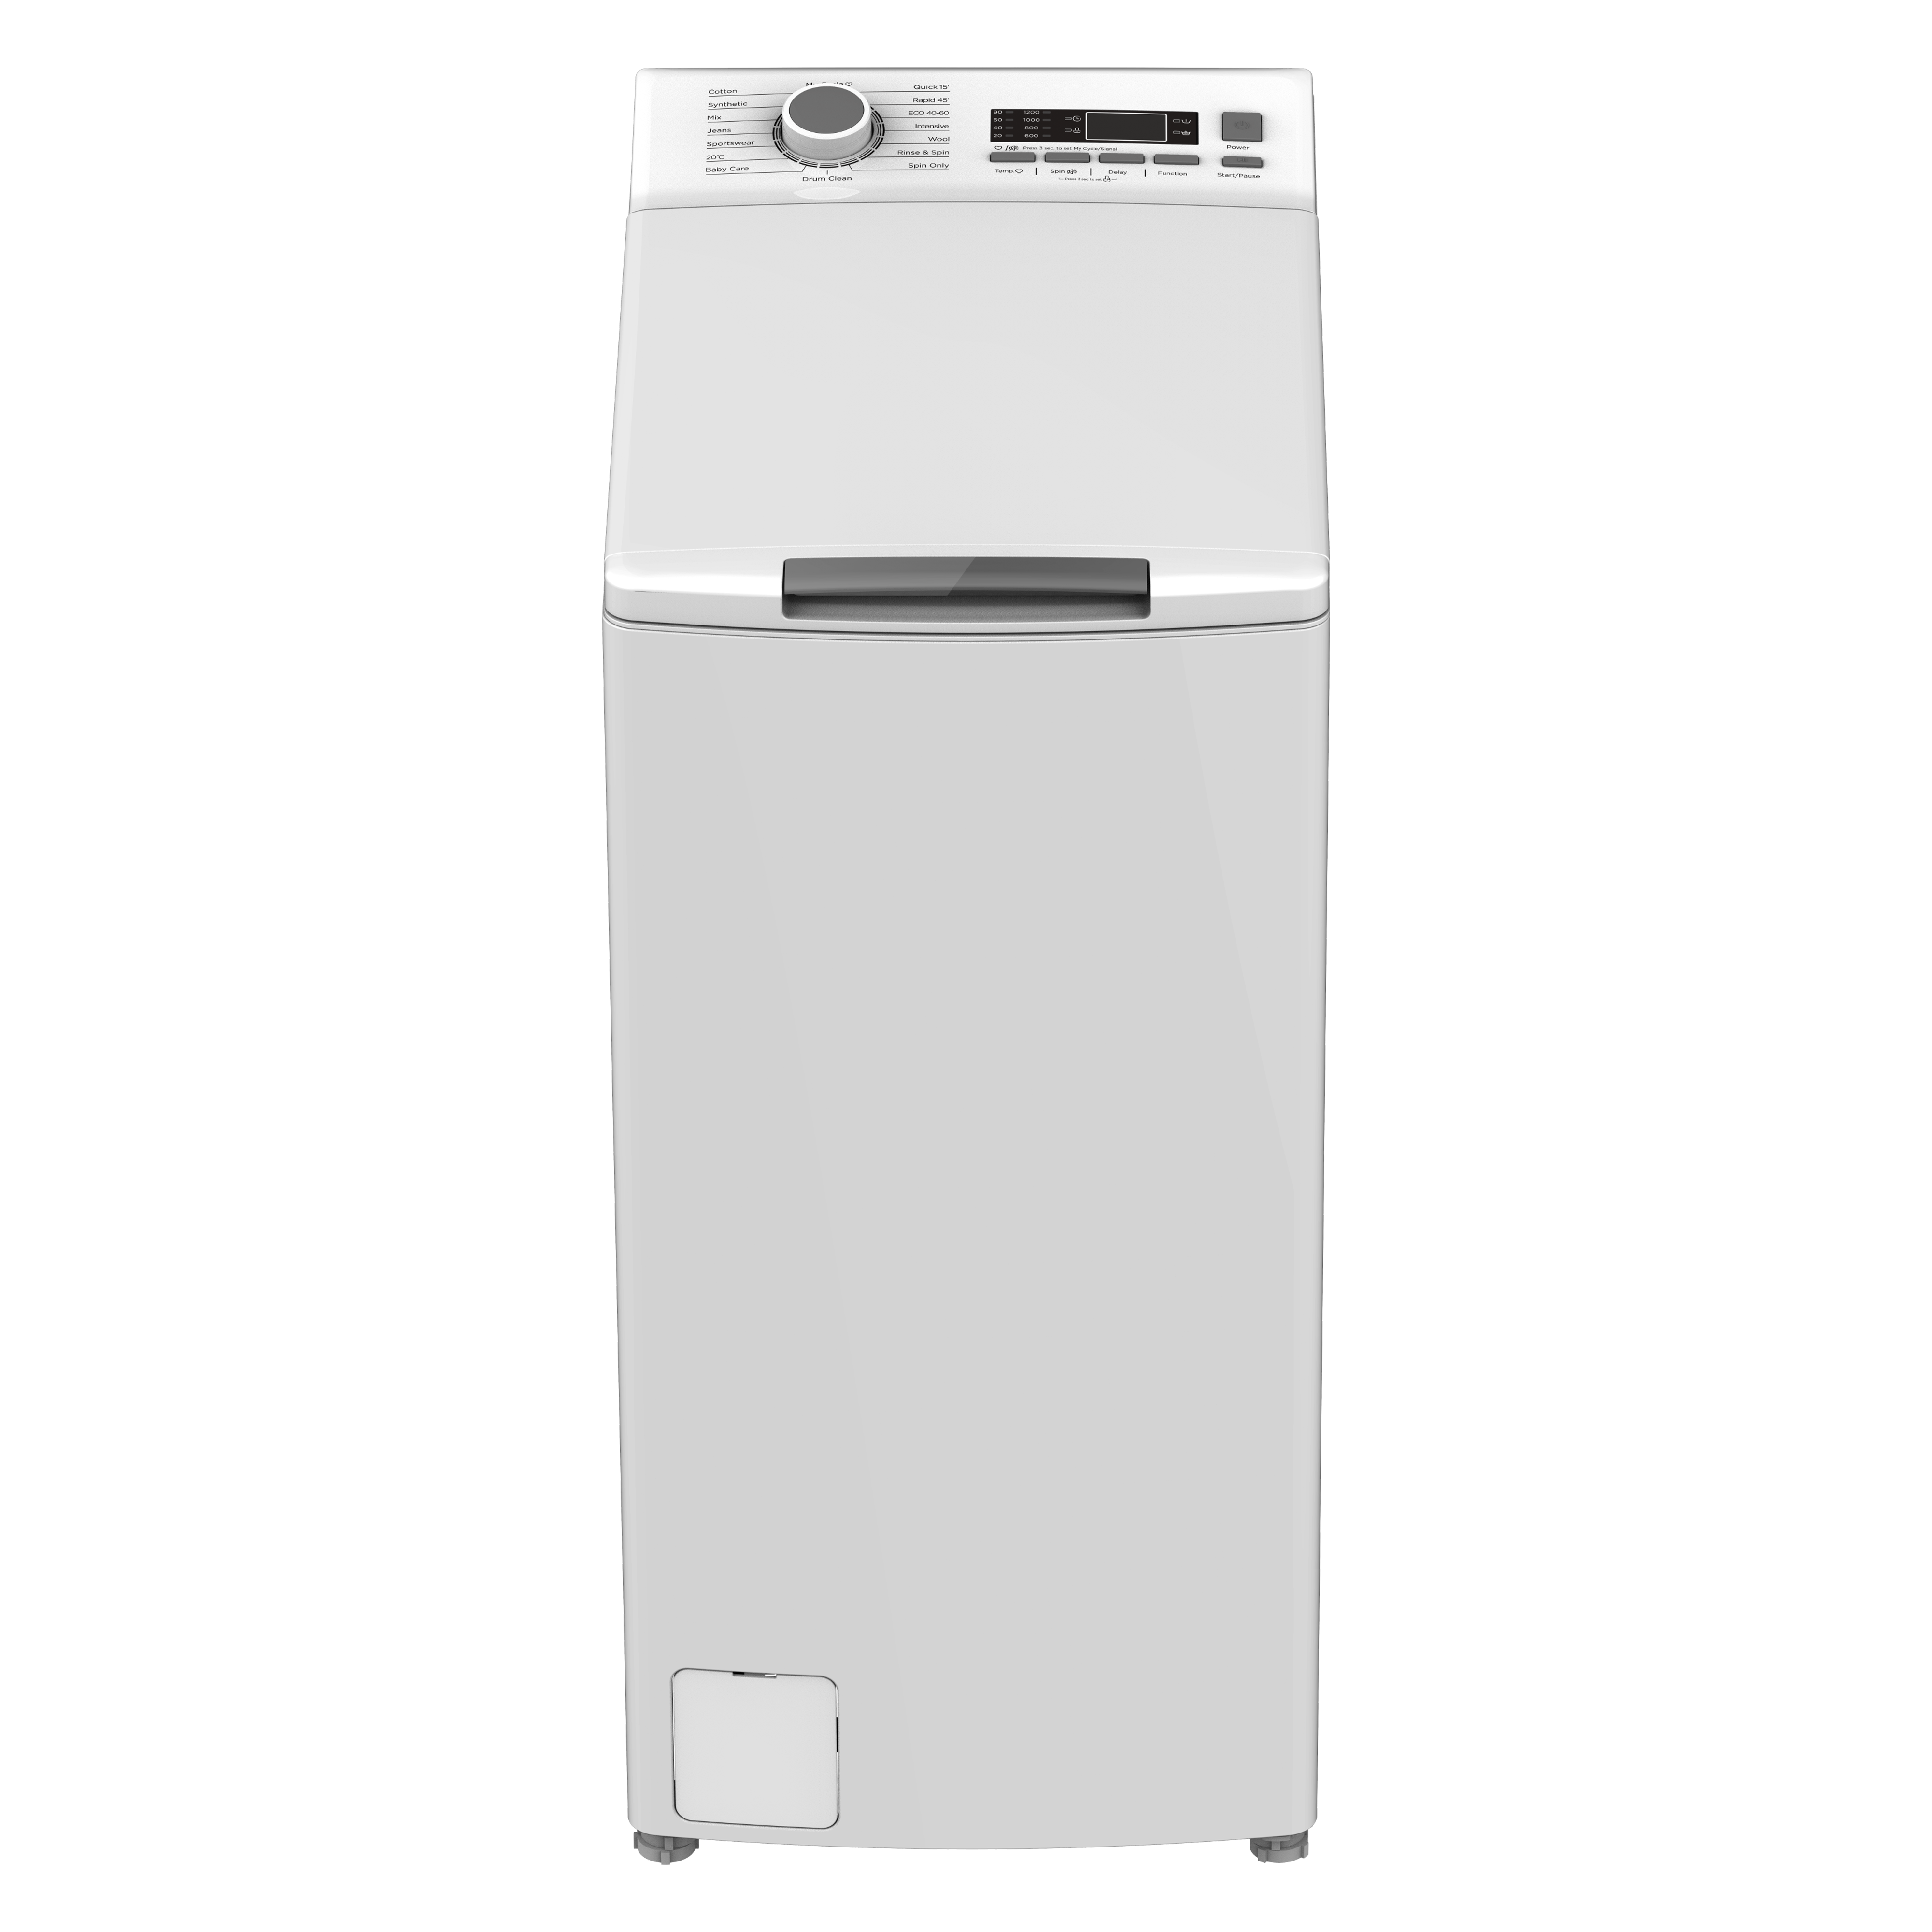 Top-In Series 12  Washer